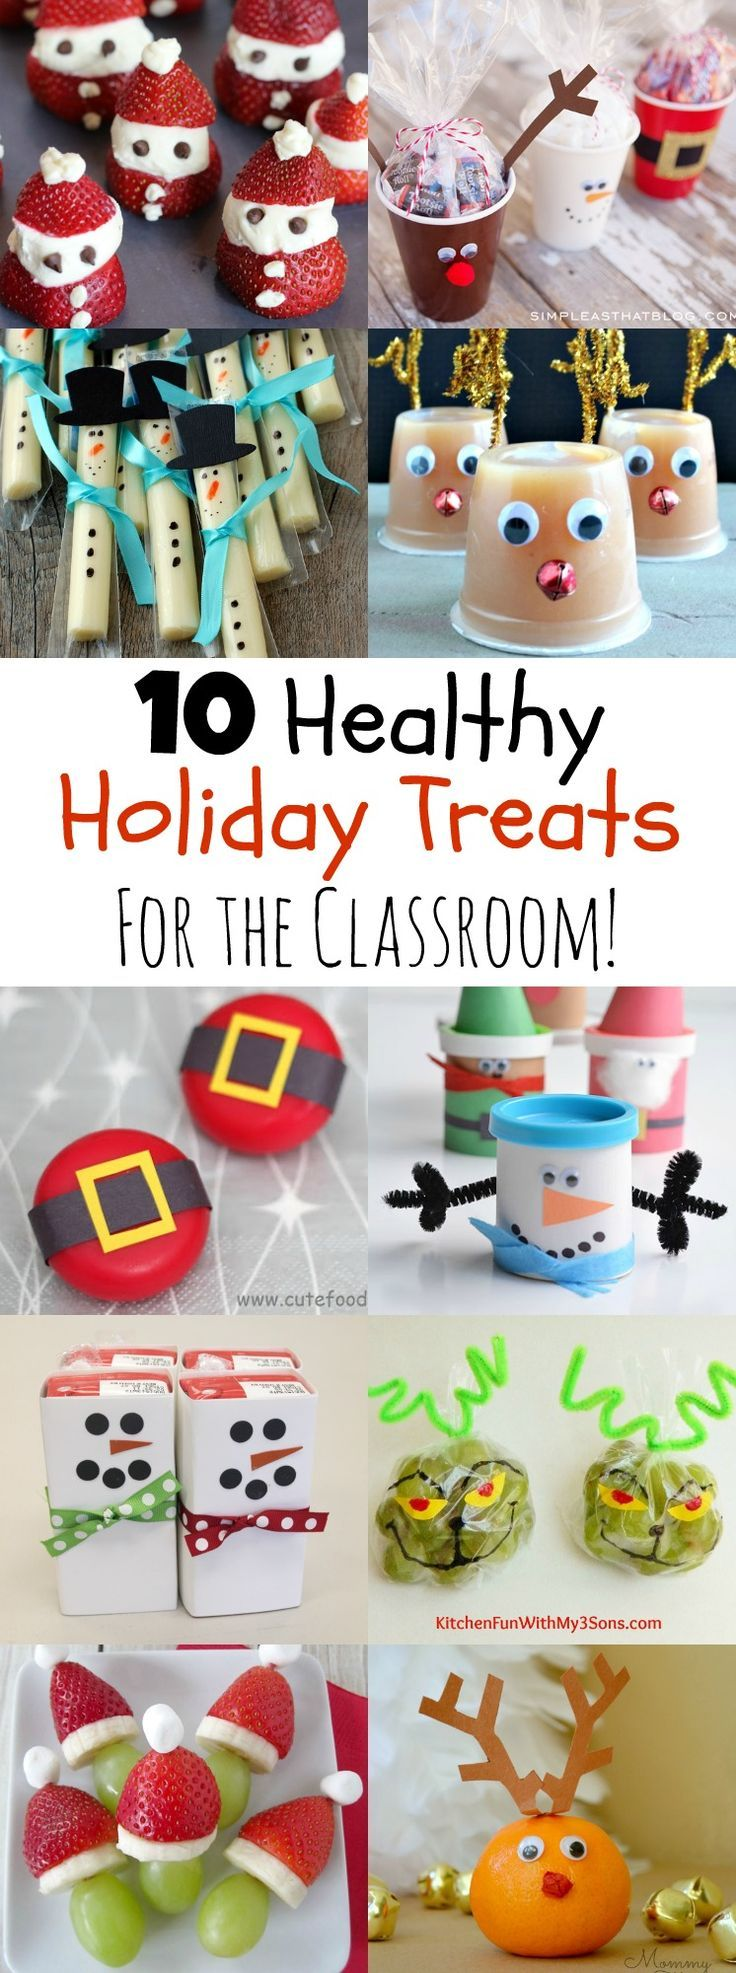 10 Healthy Holiday Treats for the Classroom – MOMables